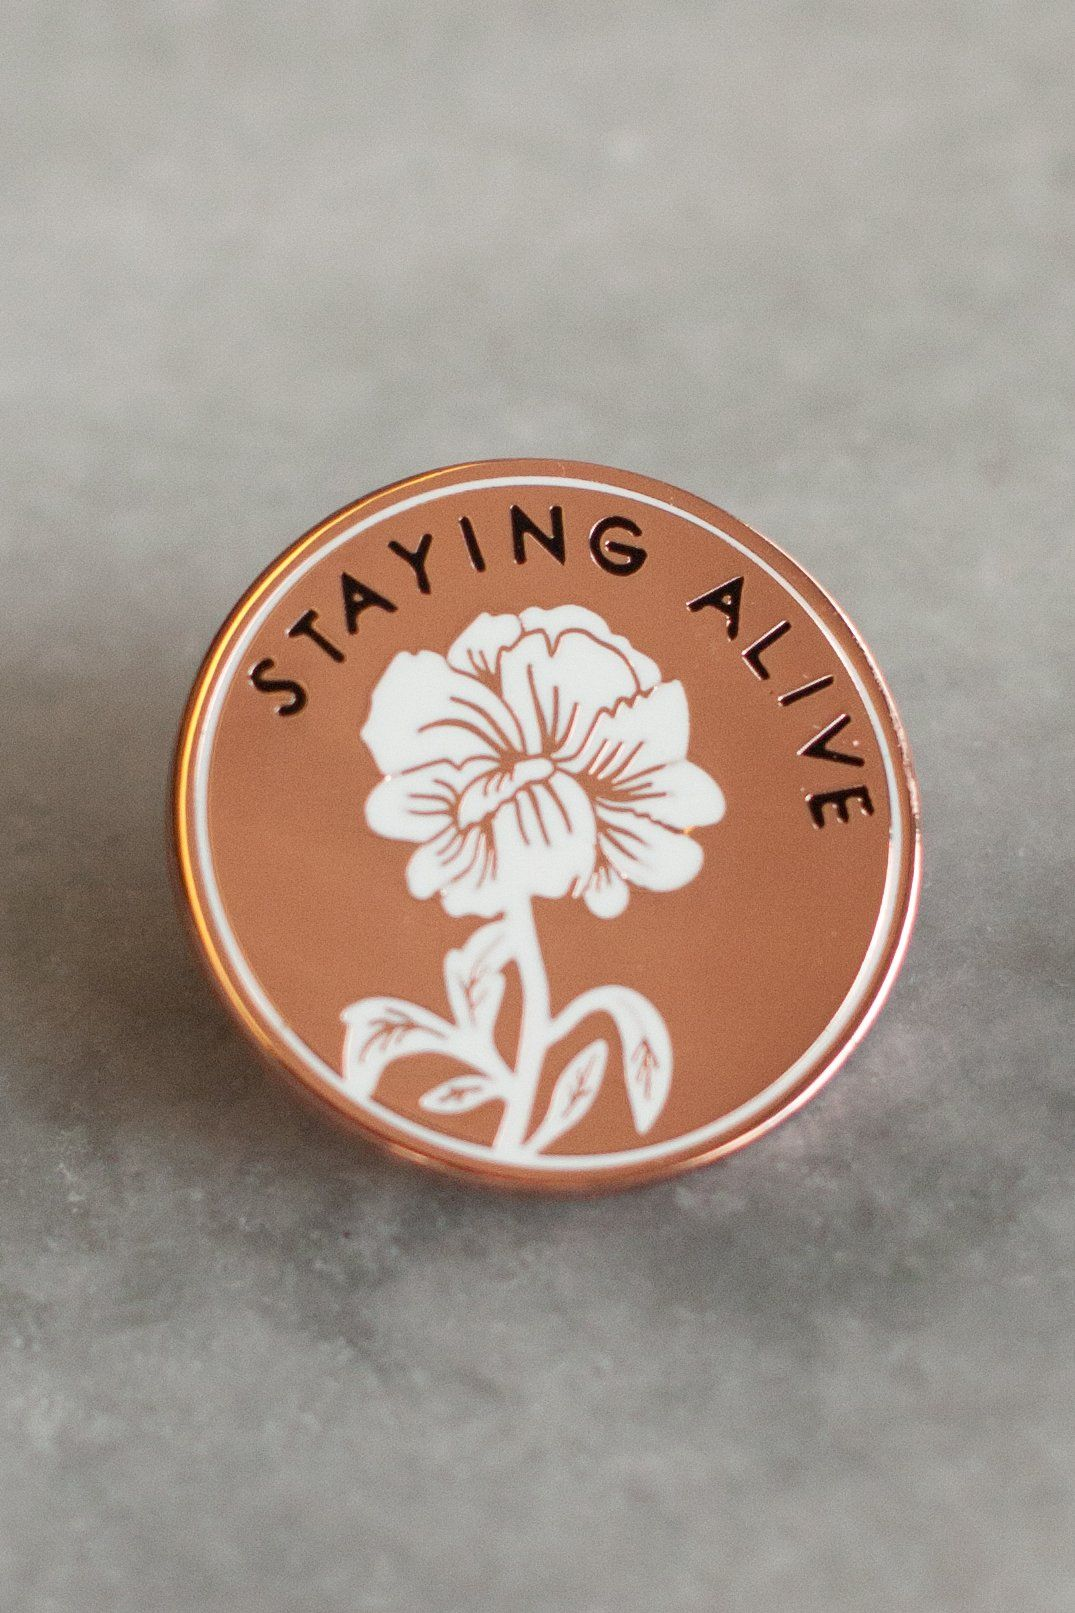 Staying Alive Pin in 2019 | -stuff i want- | Jacket pins, Lapel Pins